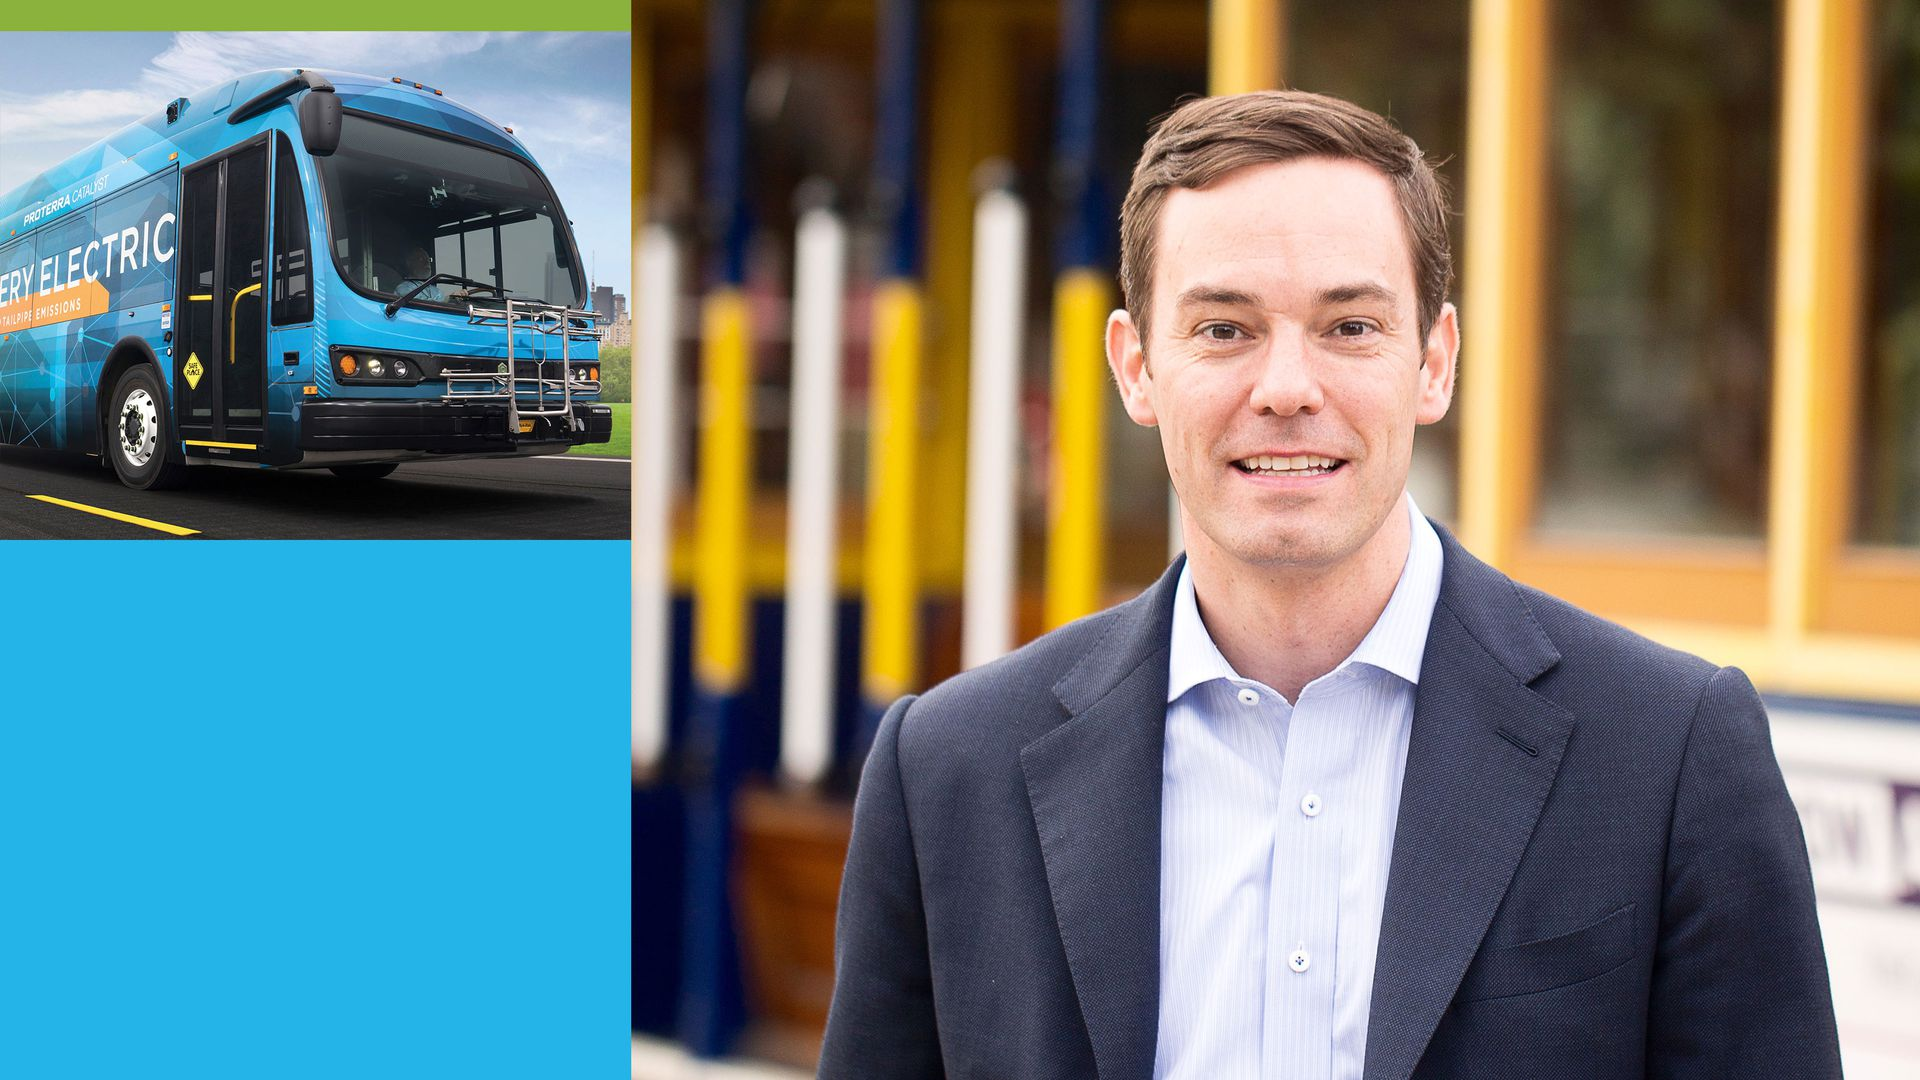 Photos of Proterra CEO Ryan Popple and an electric bus